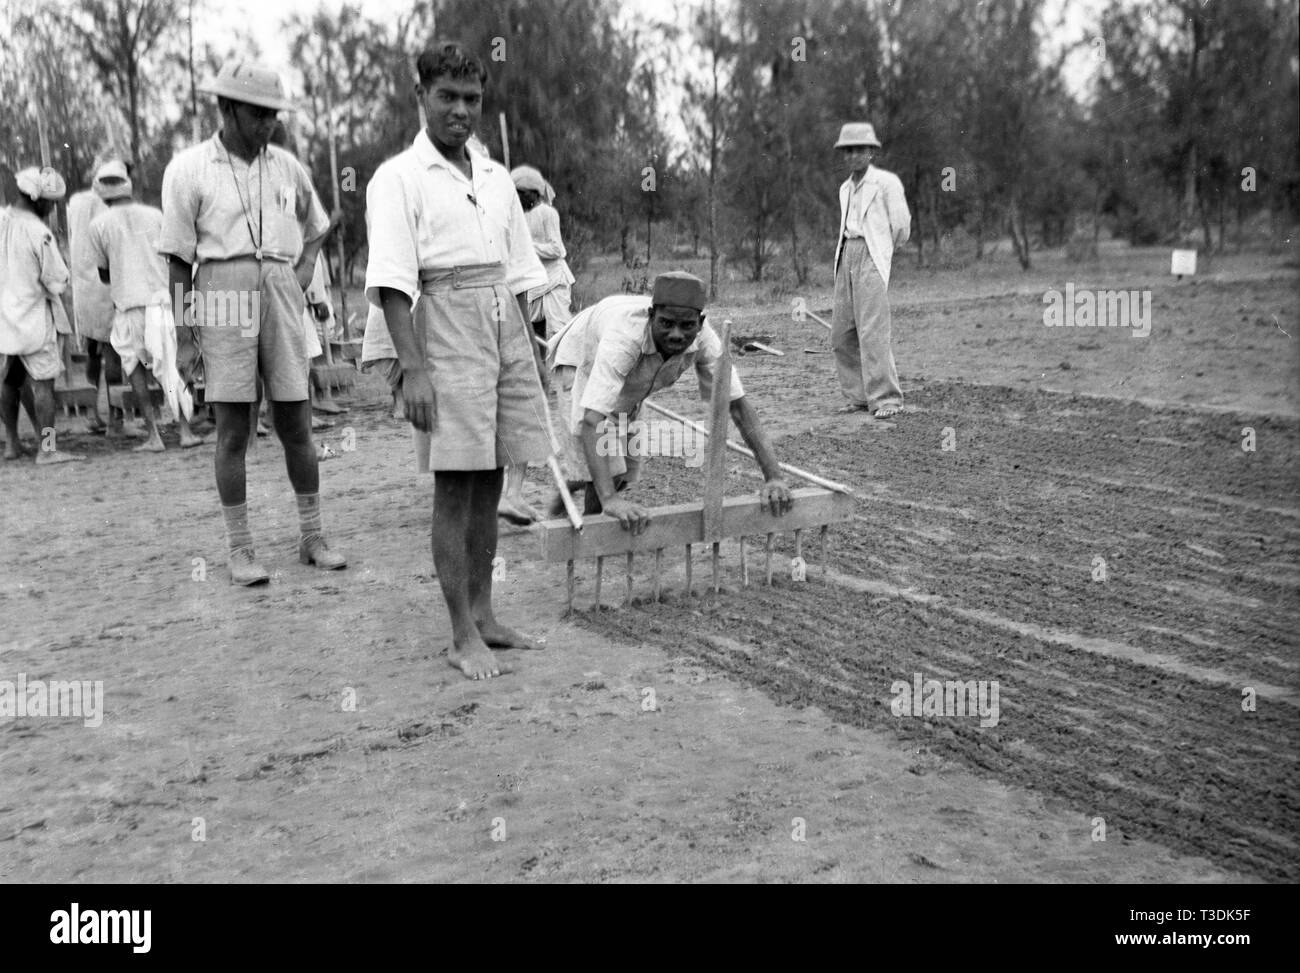 Plantation workers sowing seeds in British India 1945 - Stock Image